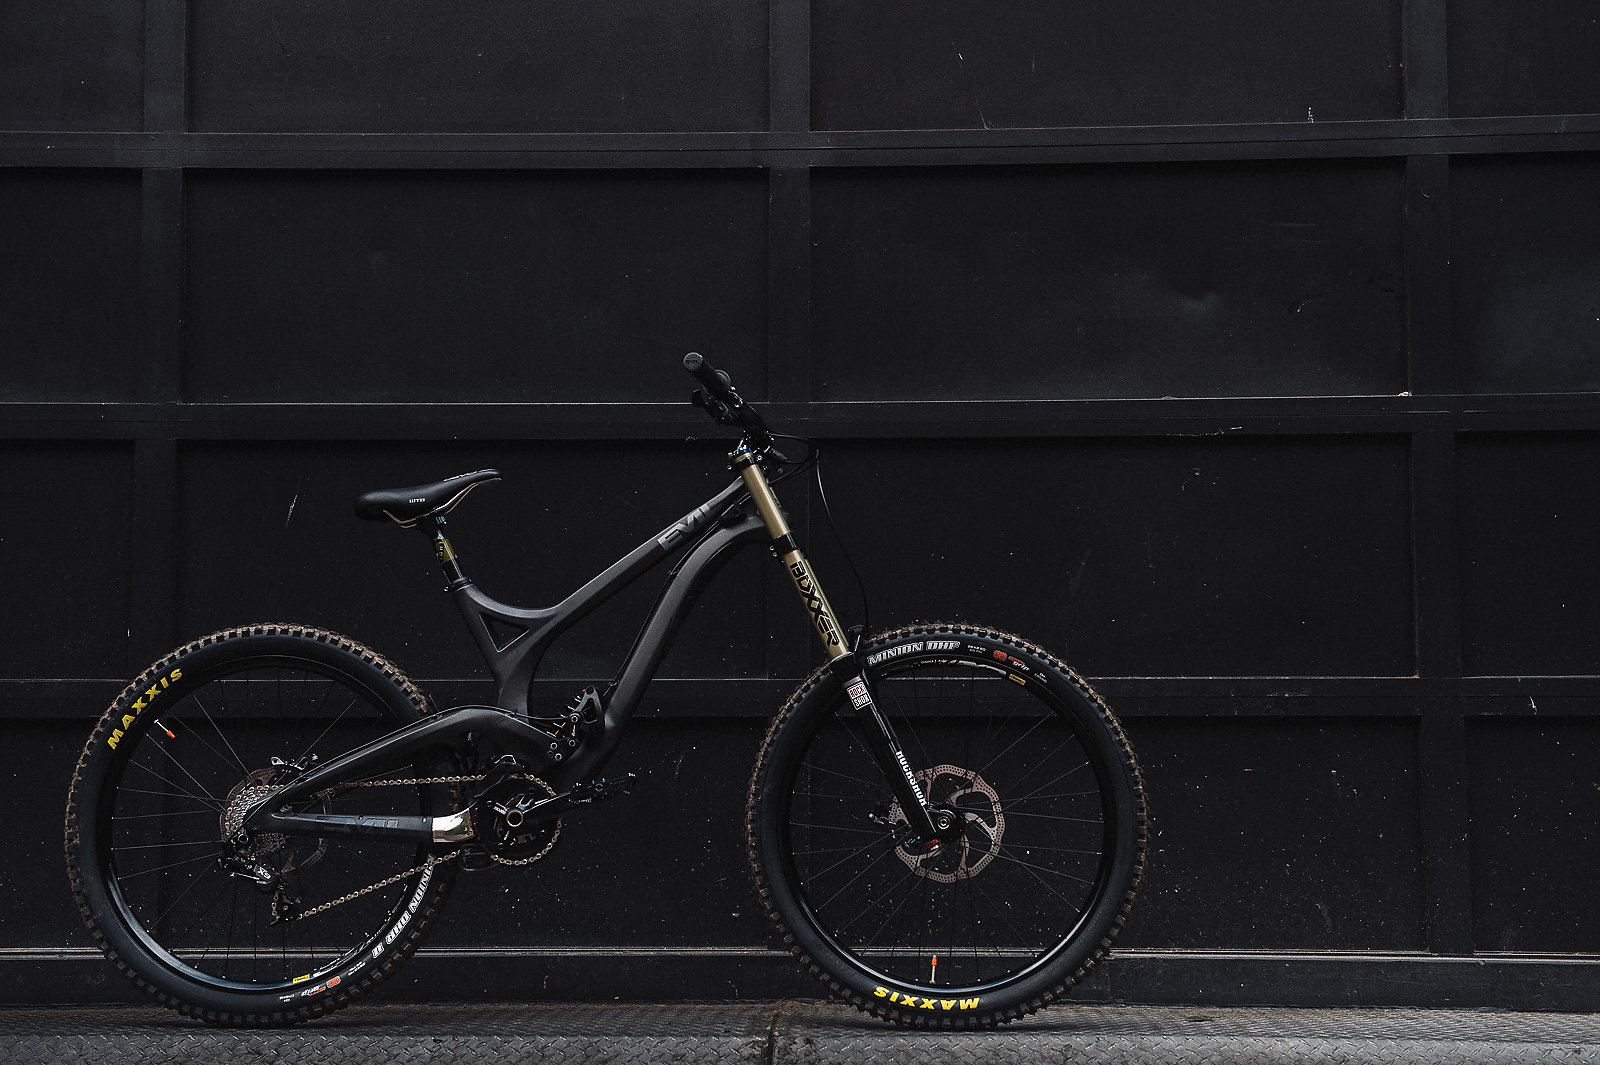 7e378eee6f8 The Evil Undead, the second fully carbon DH rig on the market and the  mascot for the company's Lazarus-esque resurrection. Sleek, timeless and  mean, ...